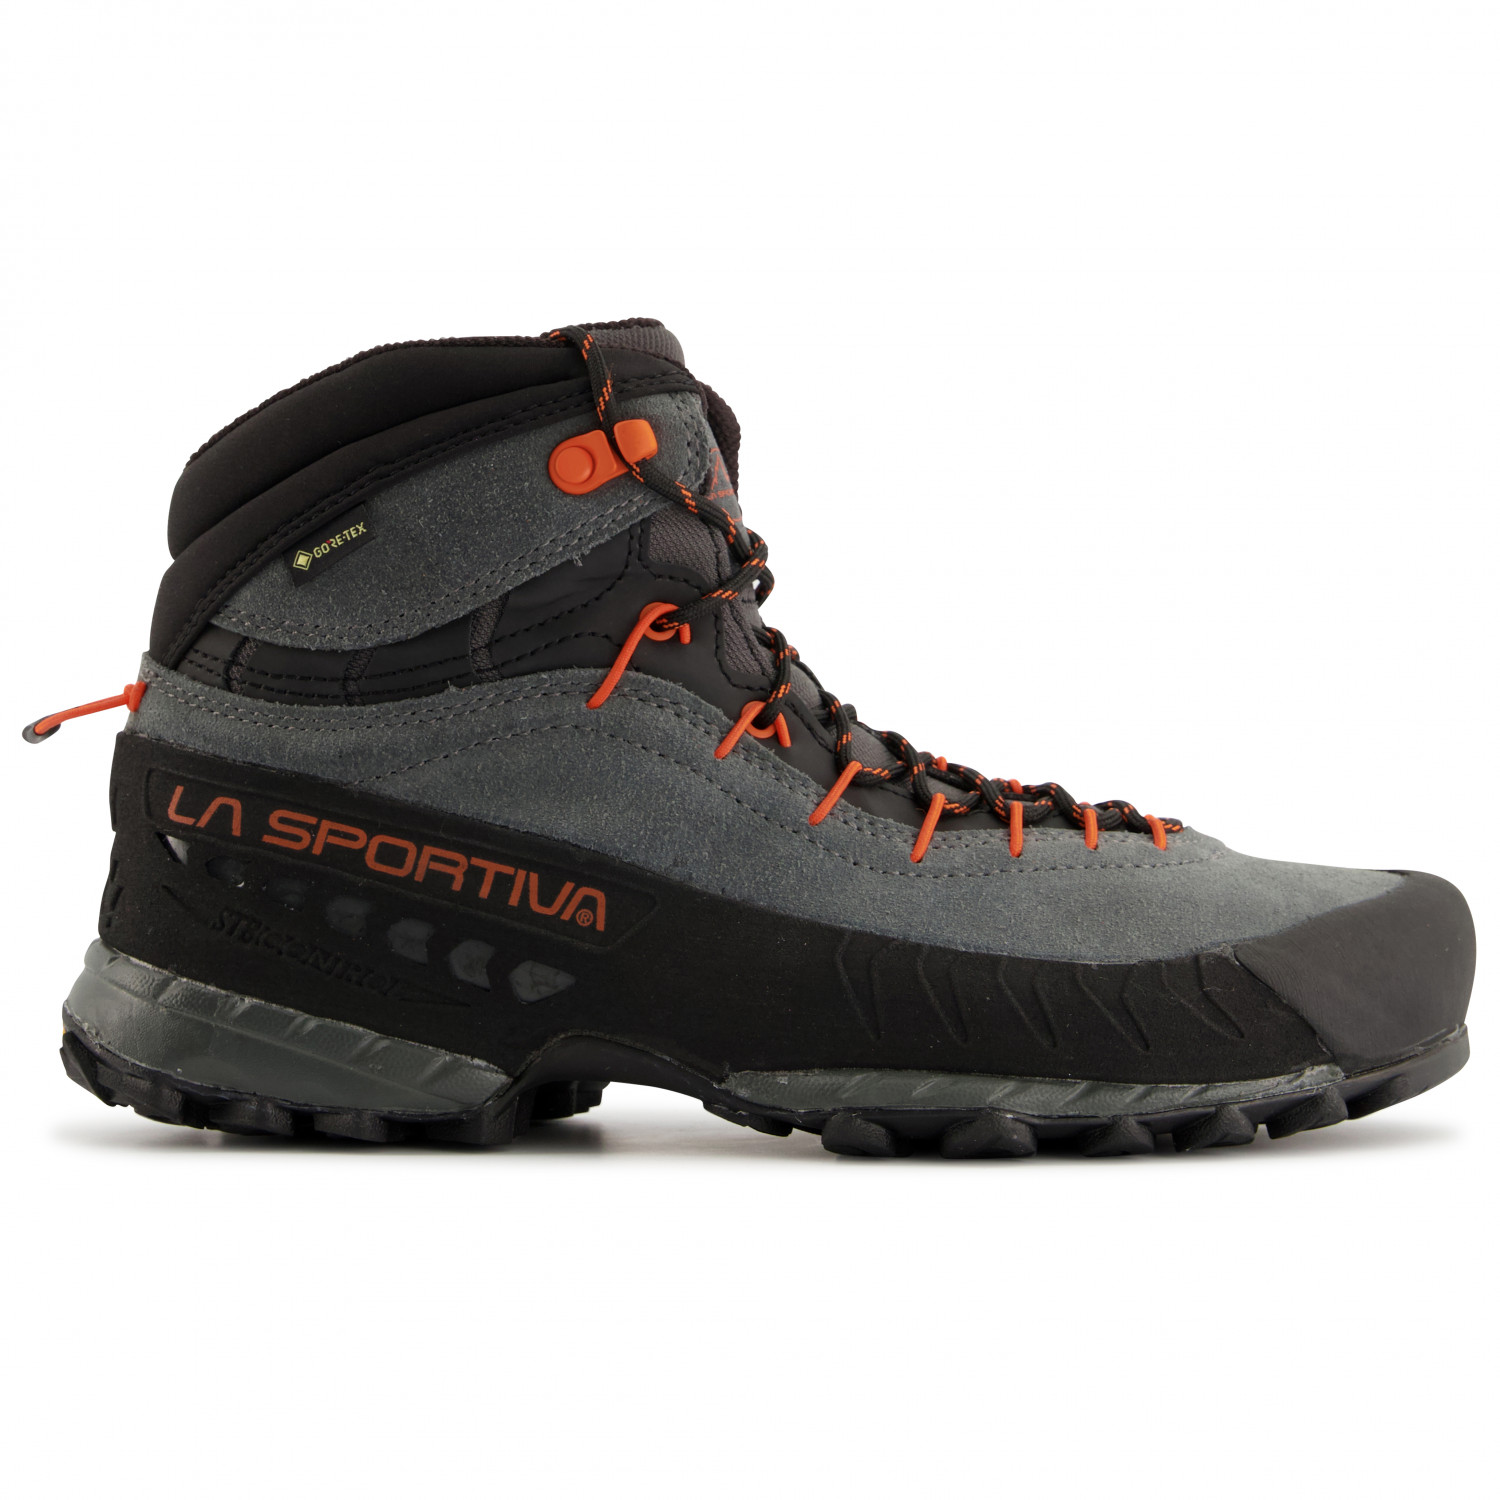 La Sportiva - TX4 Mid GTX - Approachschuhe Carbon / Flame